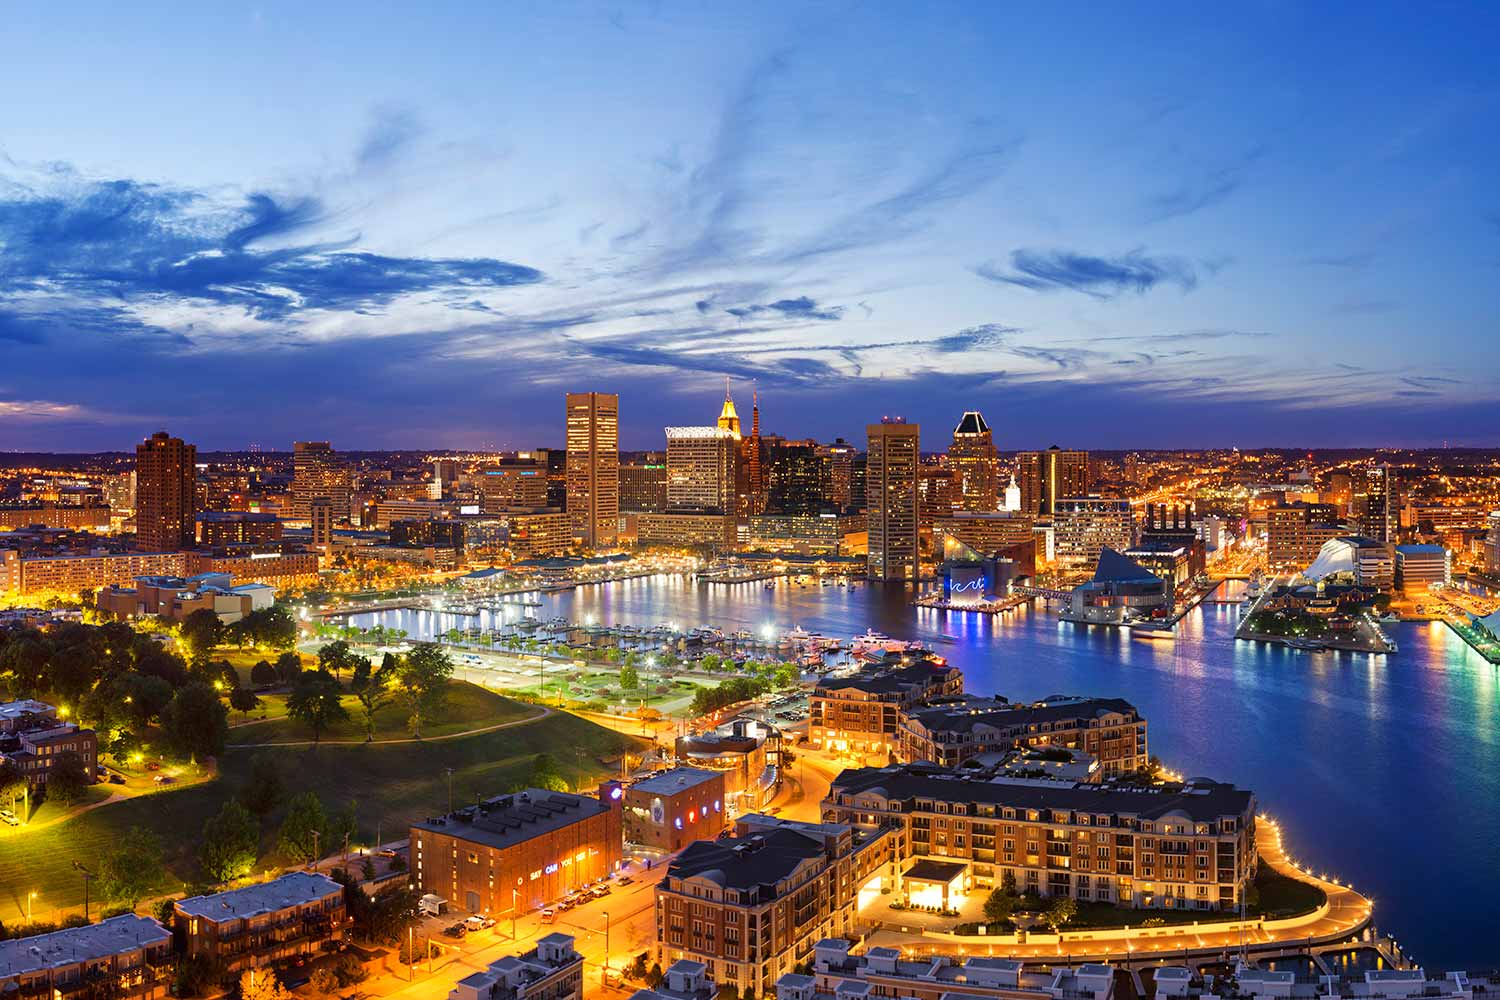 Baltimore Maryland is the deatured destination for student group travel on the Suburban Tours blog.